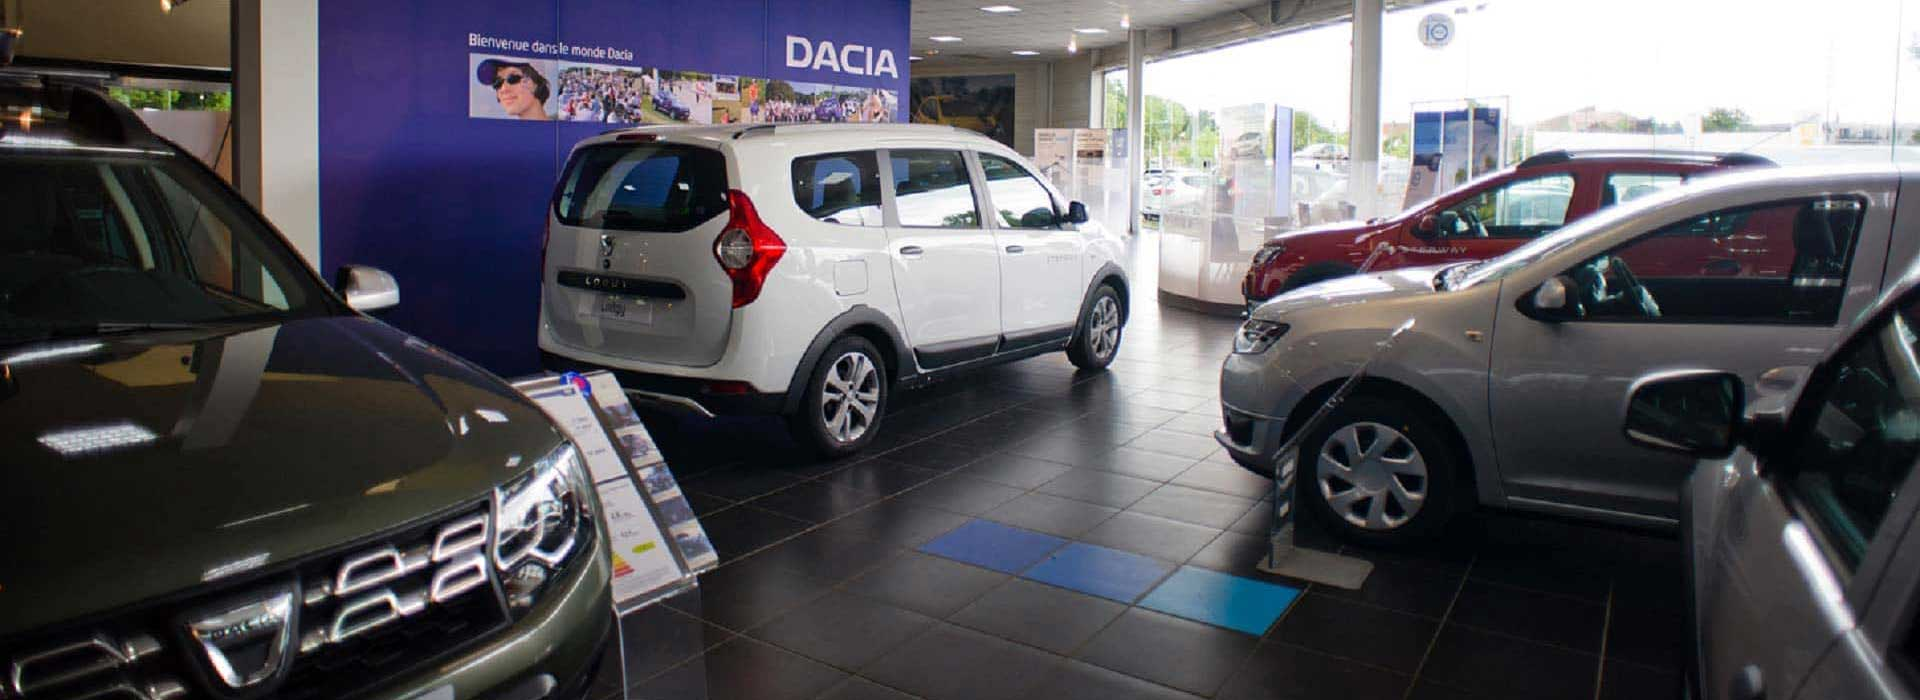 Dacia metz concessionnaire garage moselle 57 for Garage ford moselle